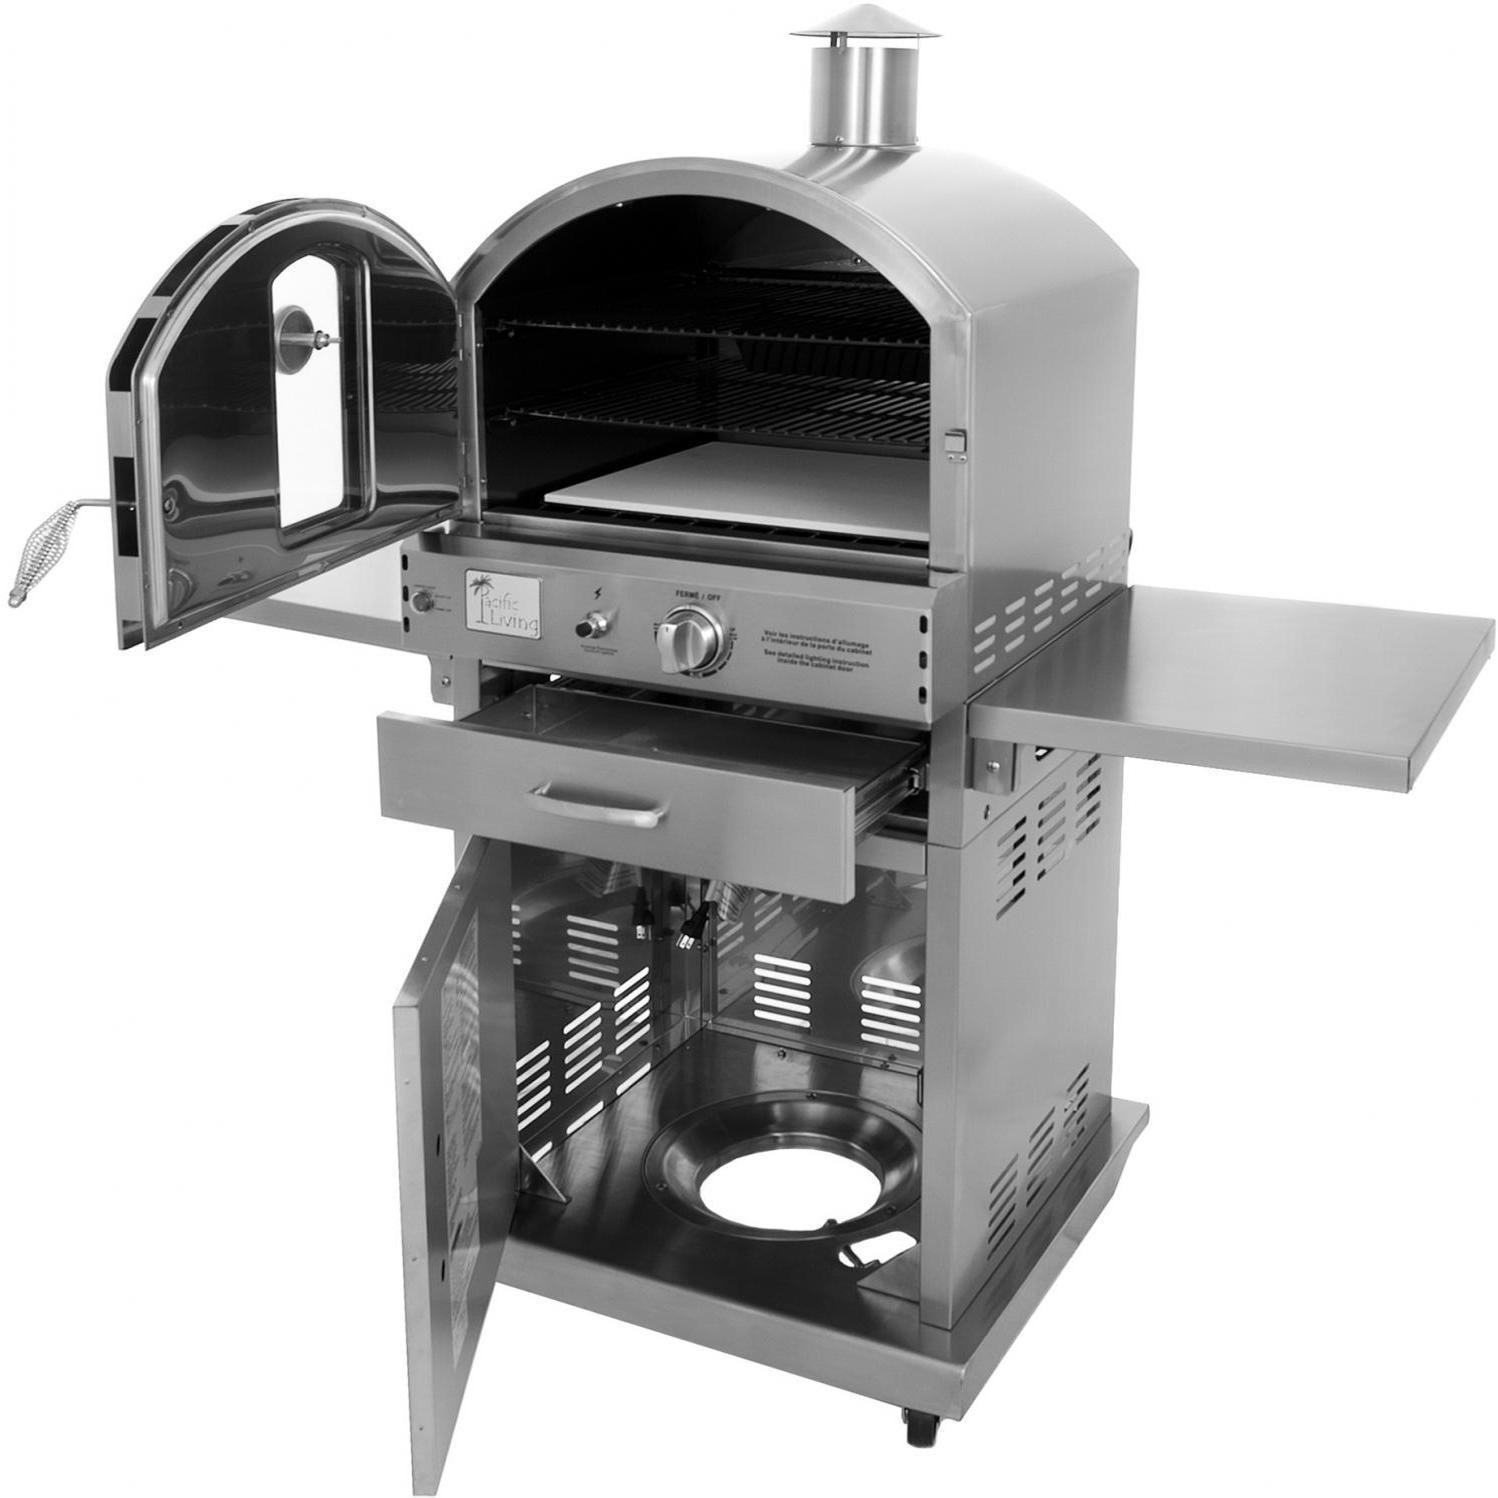 Pacific Living Outdoor Oven Backyard Review Busted Wallet